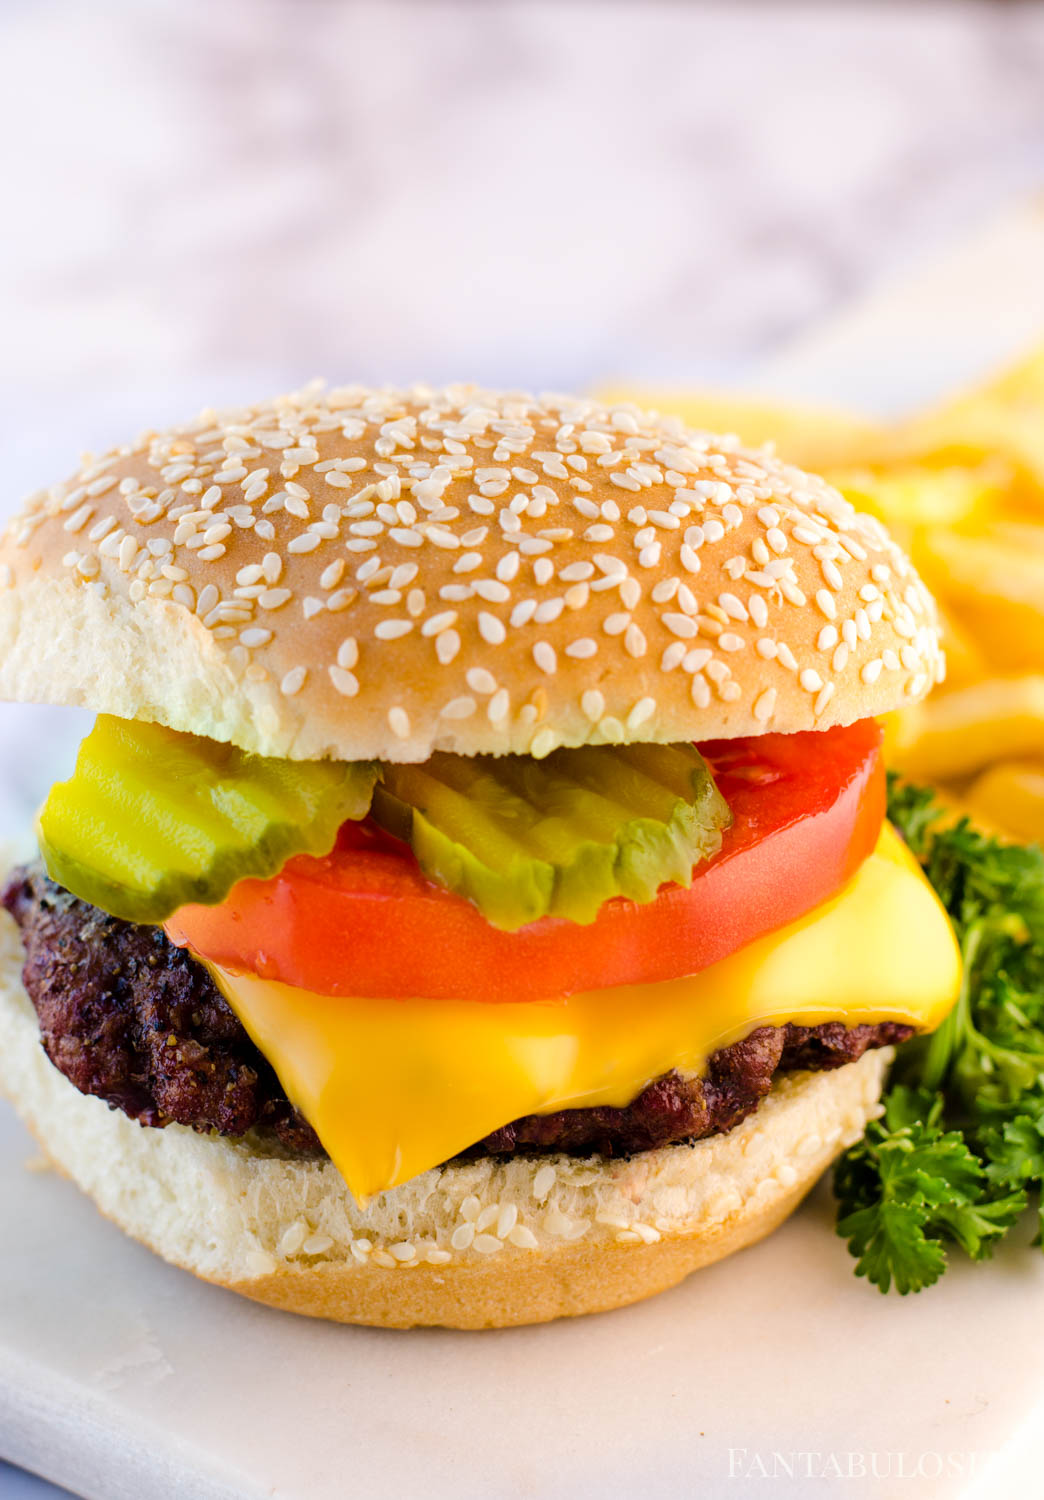 Add burger toppings like tomato, pickles, onion, mustard, lettuce